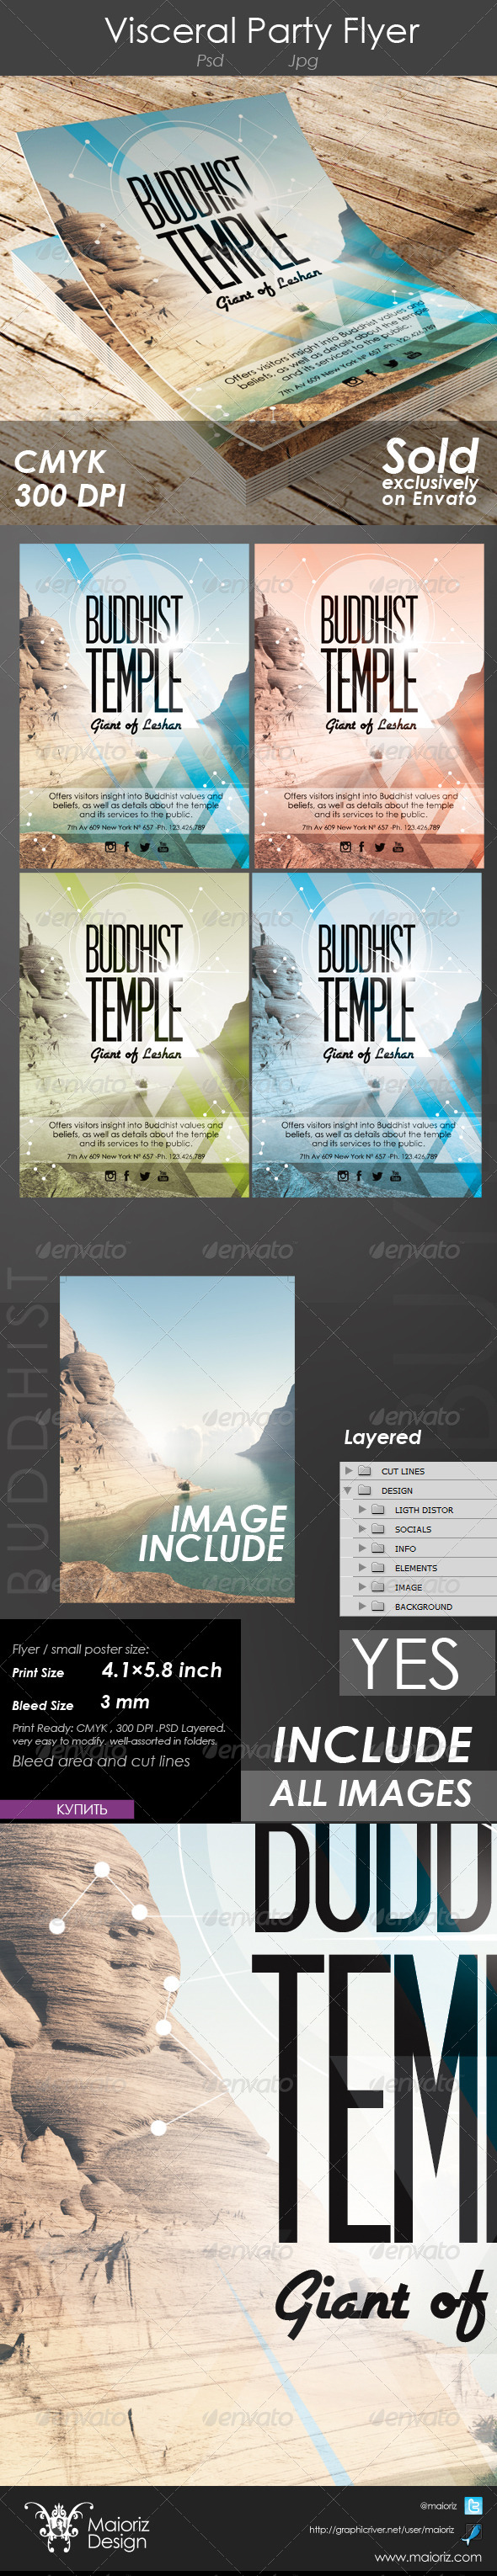 GraphicRiver Buddhist Temple Flyer 4598974